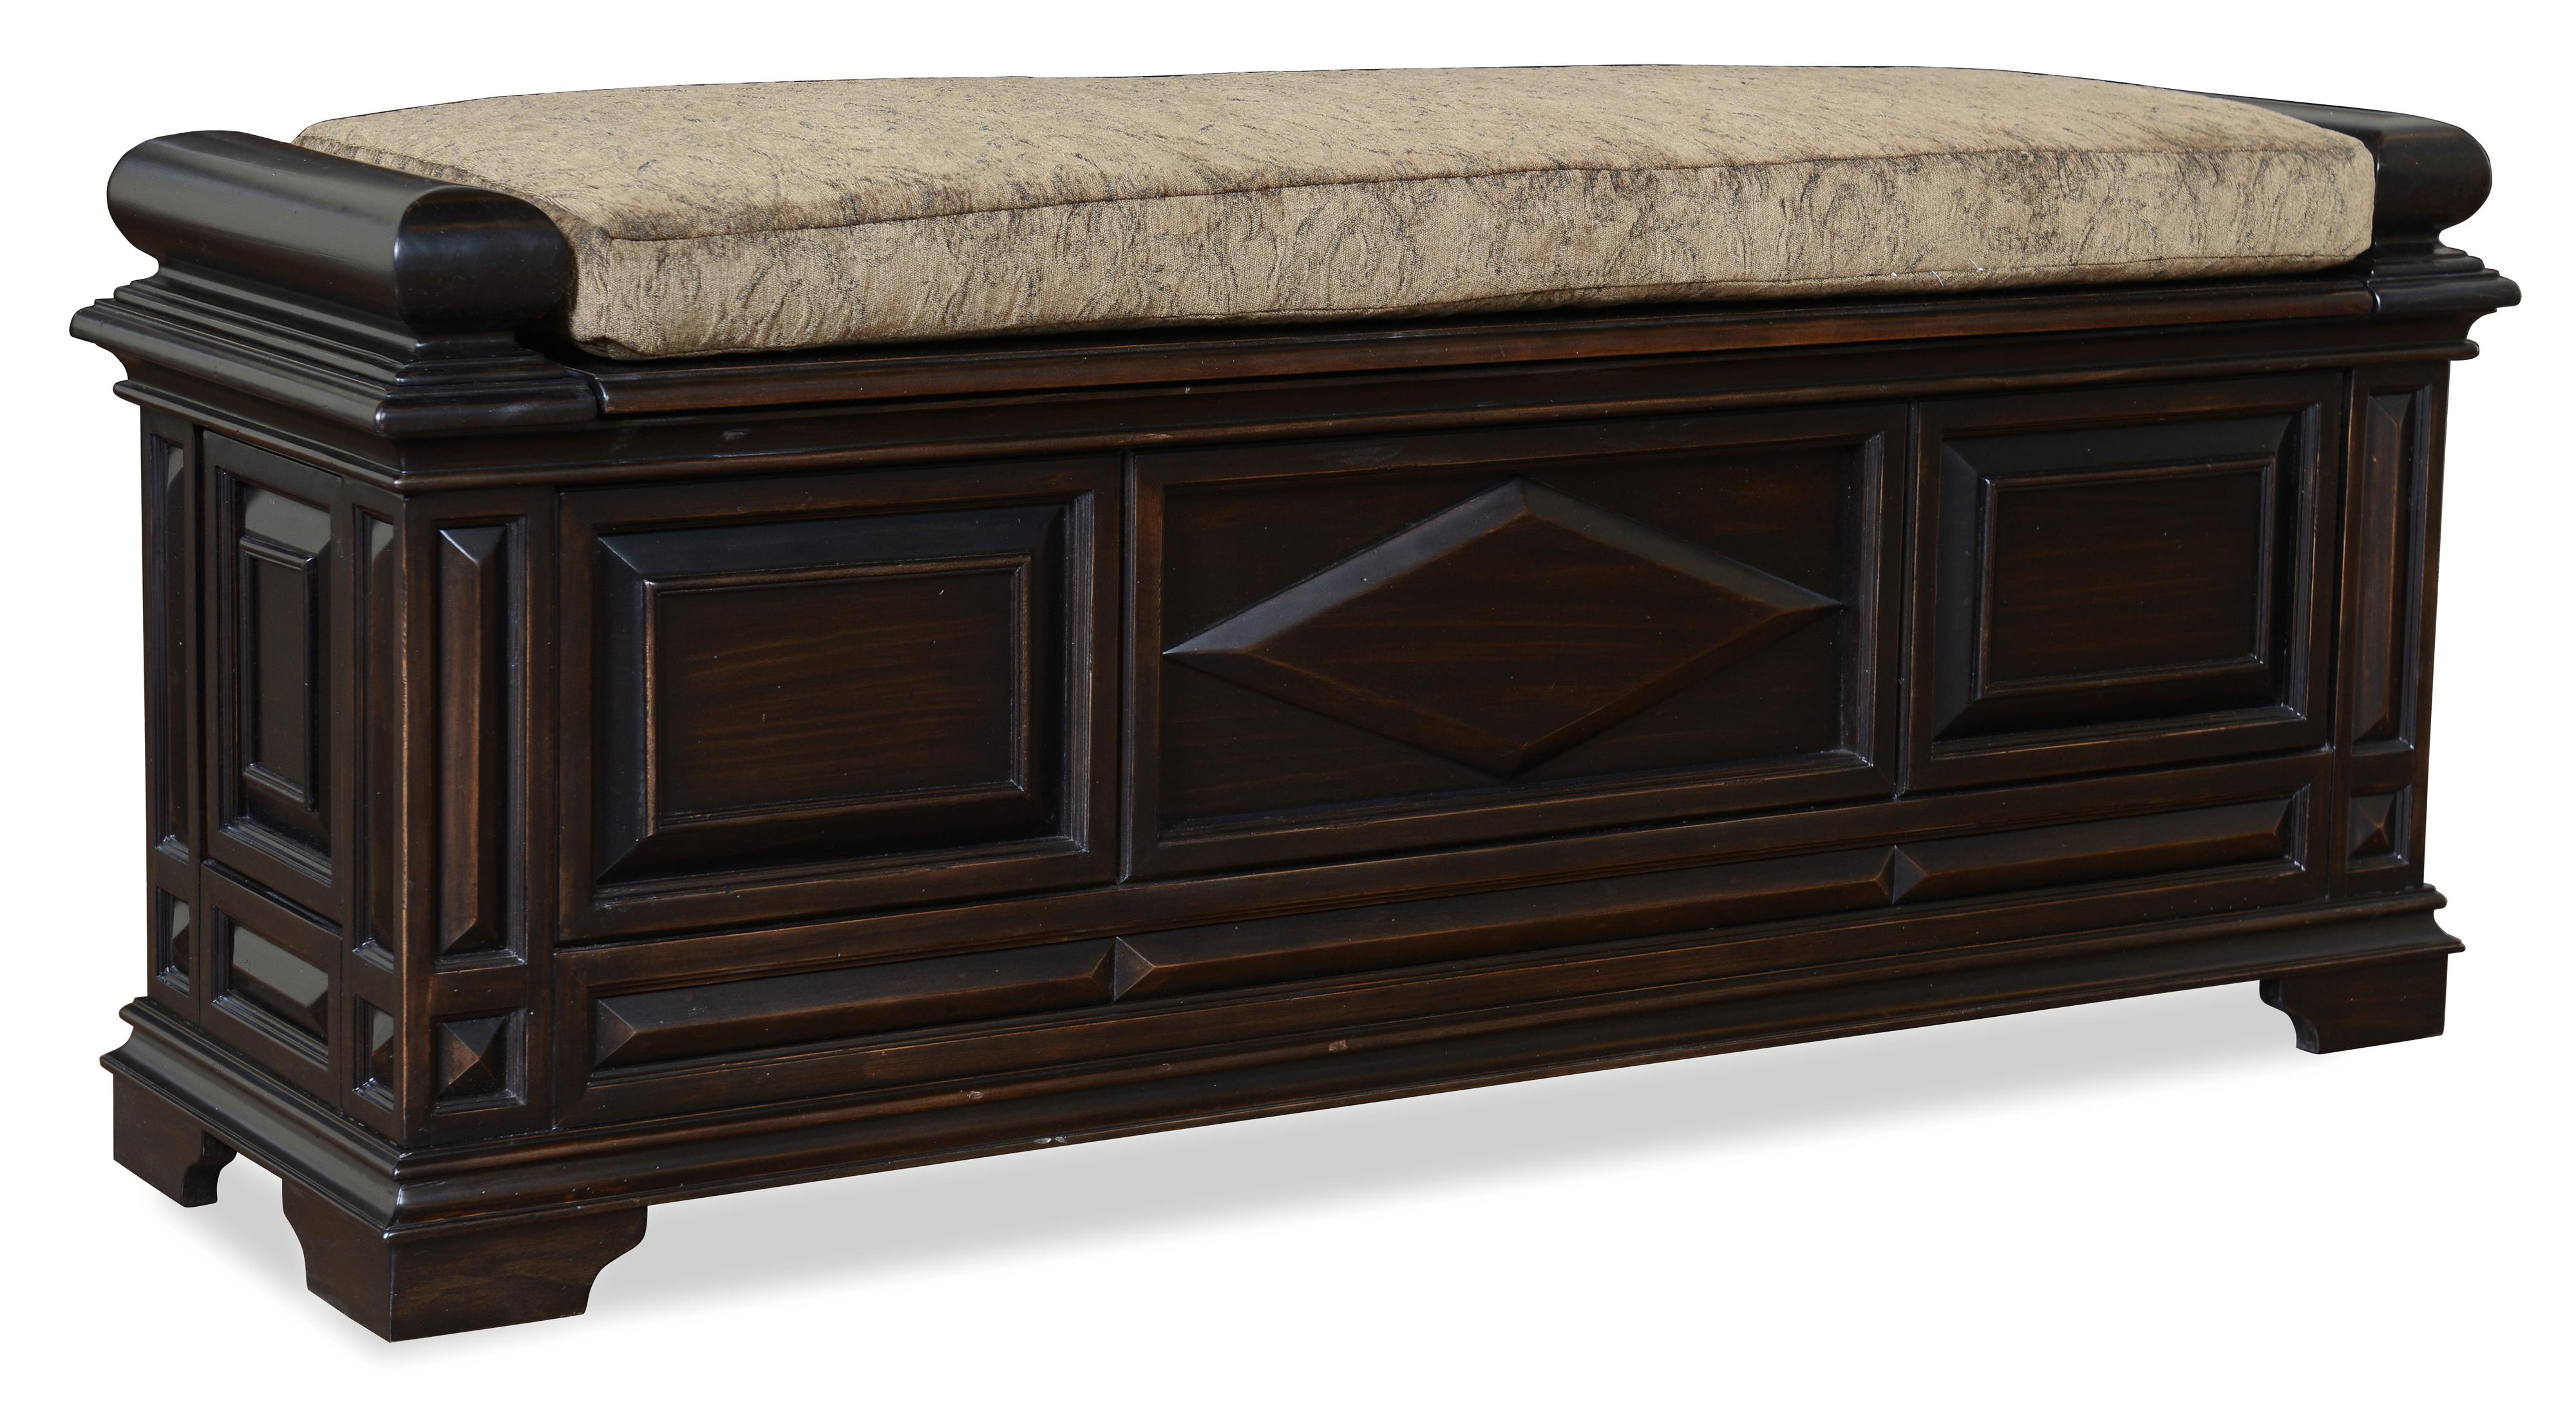 Old World Cedar-Lined Storage Bench with Cushion Top by A ...